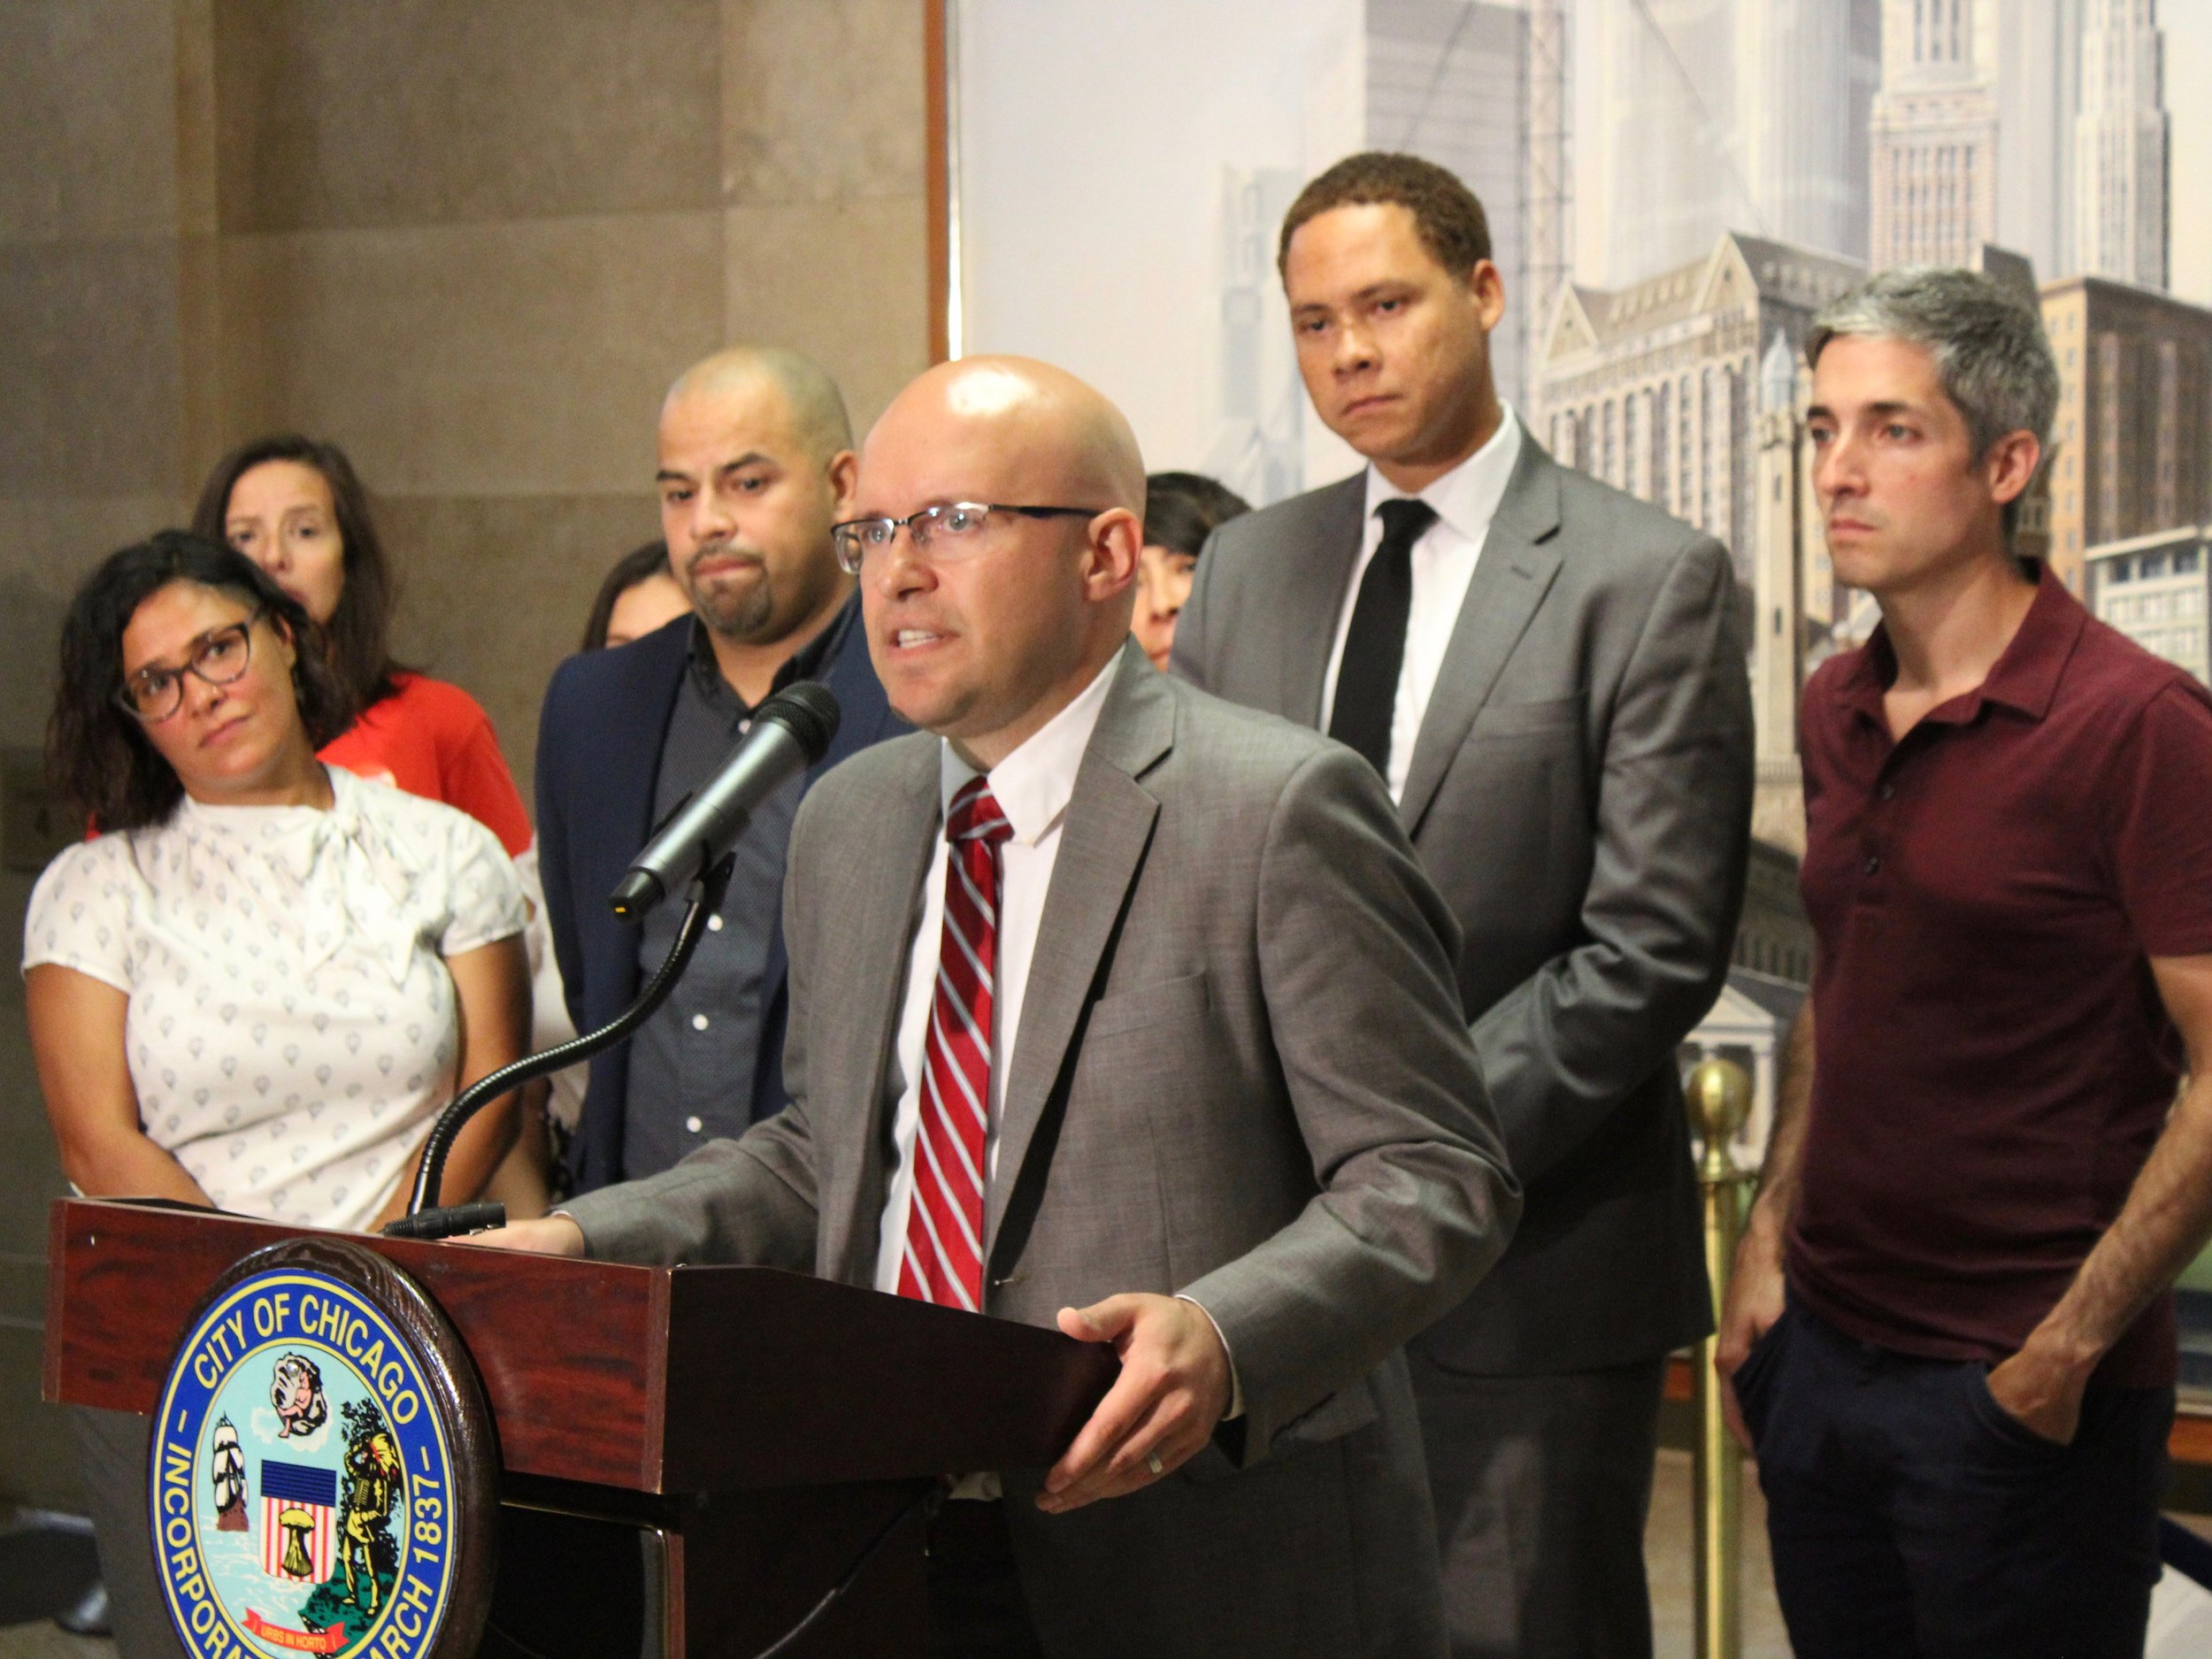 Backed by Chicago City Council colleagues Rossana Rodriguez, Andres Vazquez, Matt Martin, and Daniel LaSpata, Alderman Michael Rodriguez says anxiety over ICE raids has hurt local businesses in his Little Village neighborhood. (One Illinois/Ted Cox)